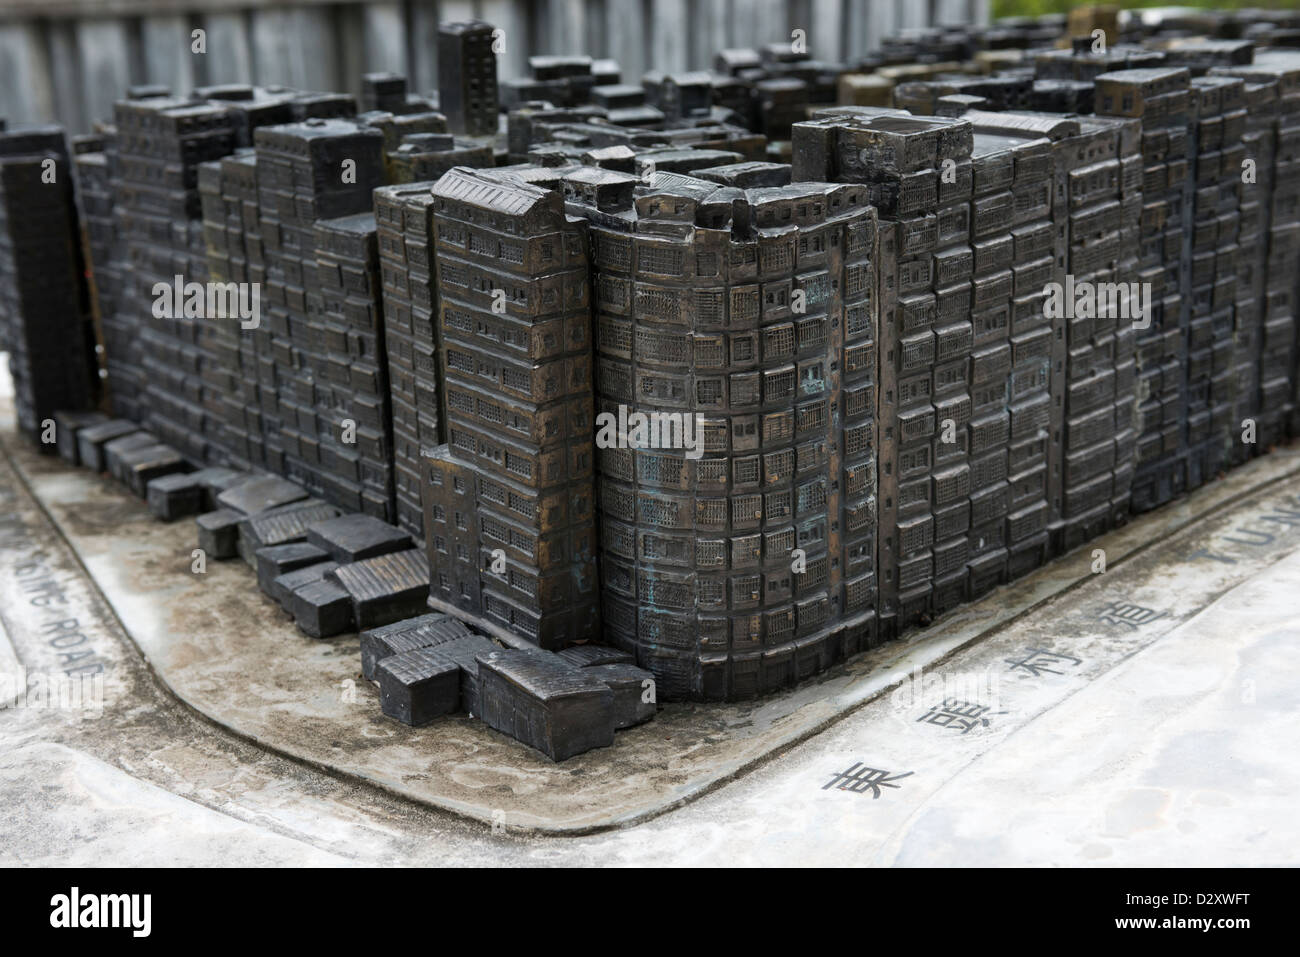 A scale model of the old Kowloon Walled City before it was demolised in 1994, Hong Kong. - Stock Image